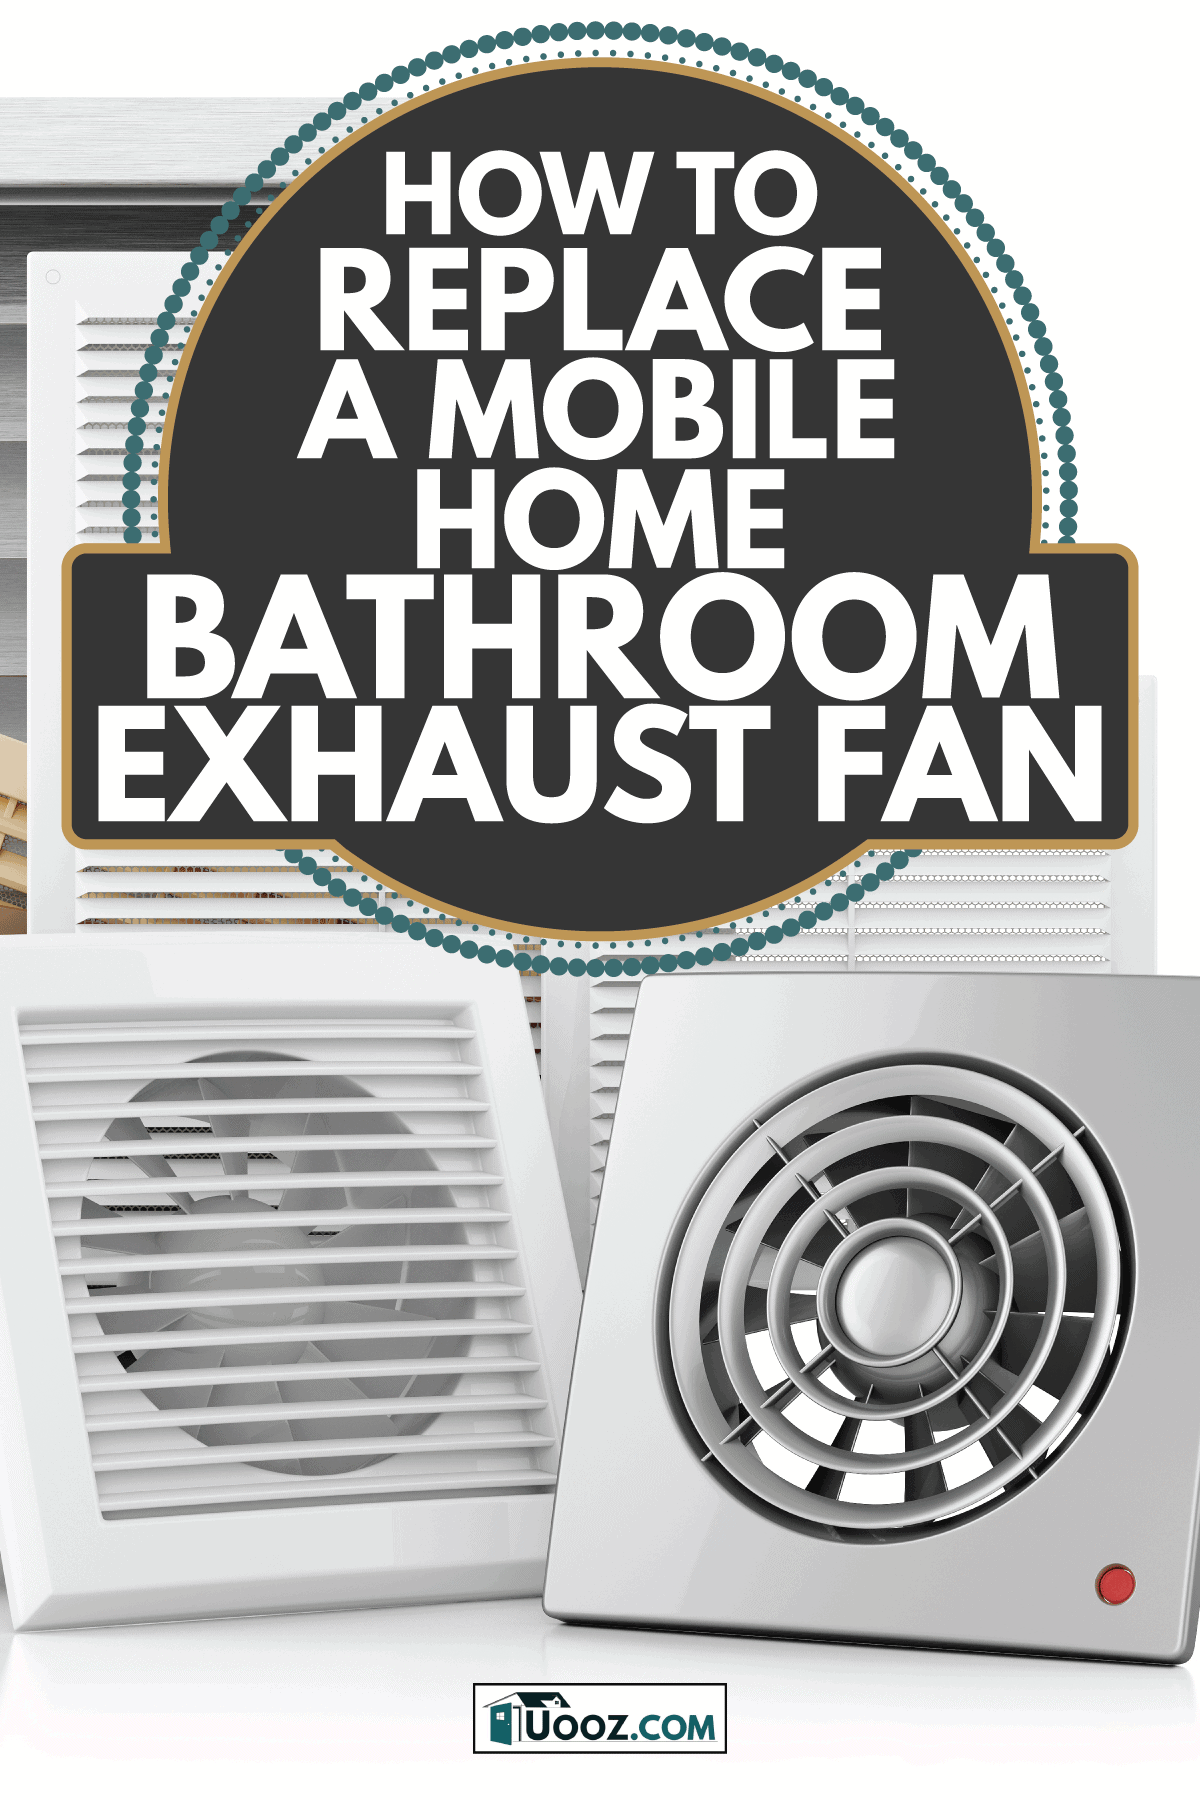 Set of ventilation, exhaust fans on display. How To Replace A Mobile Home Bathroom Exhaust Fan